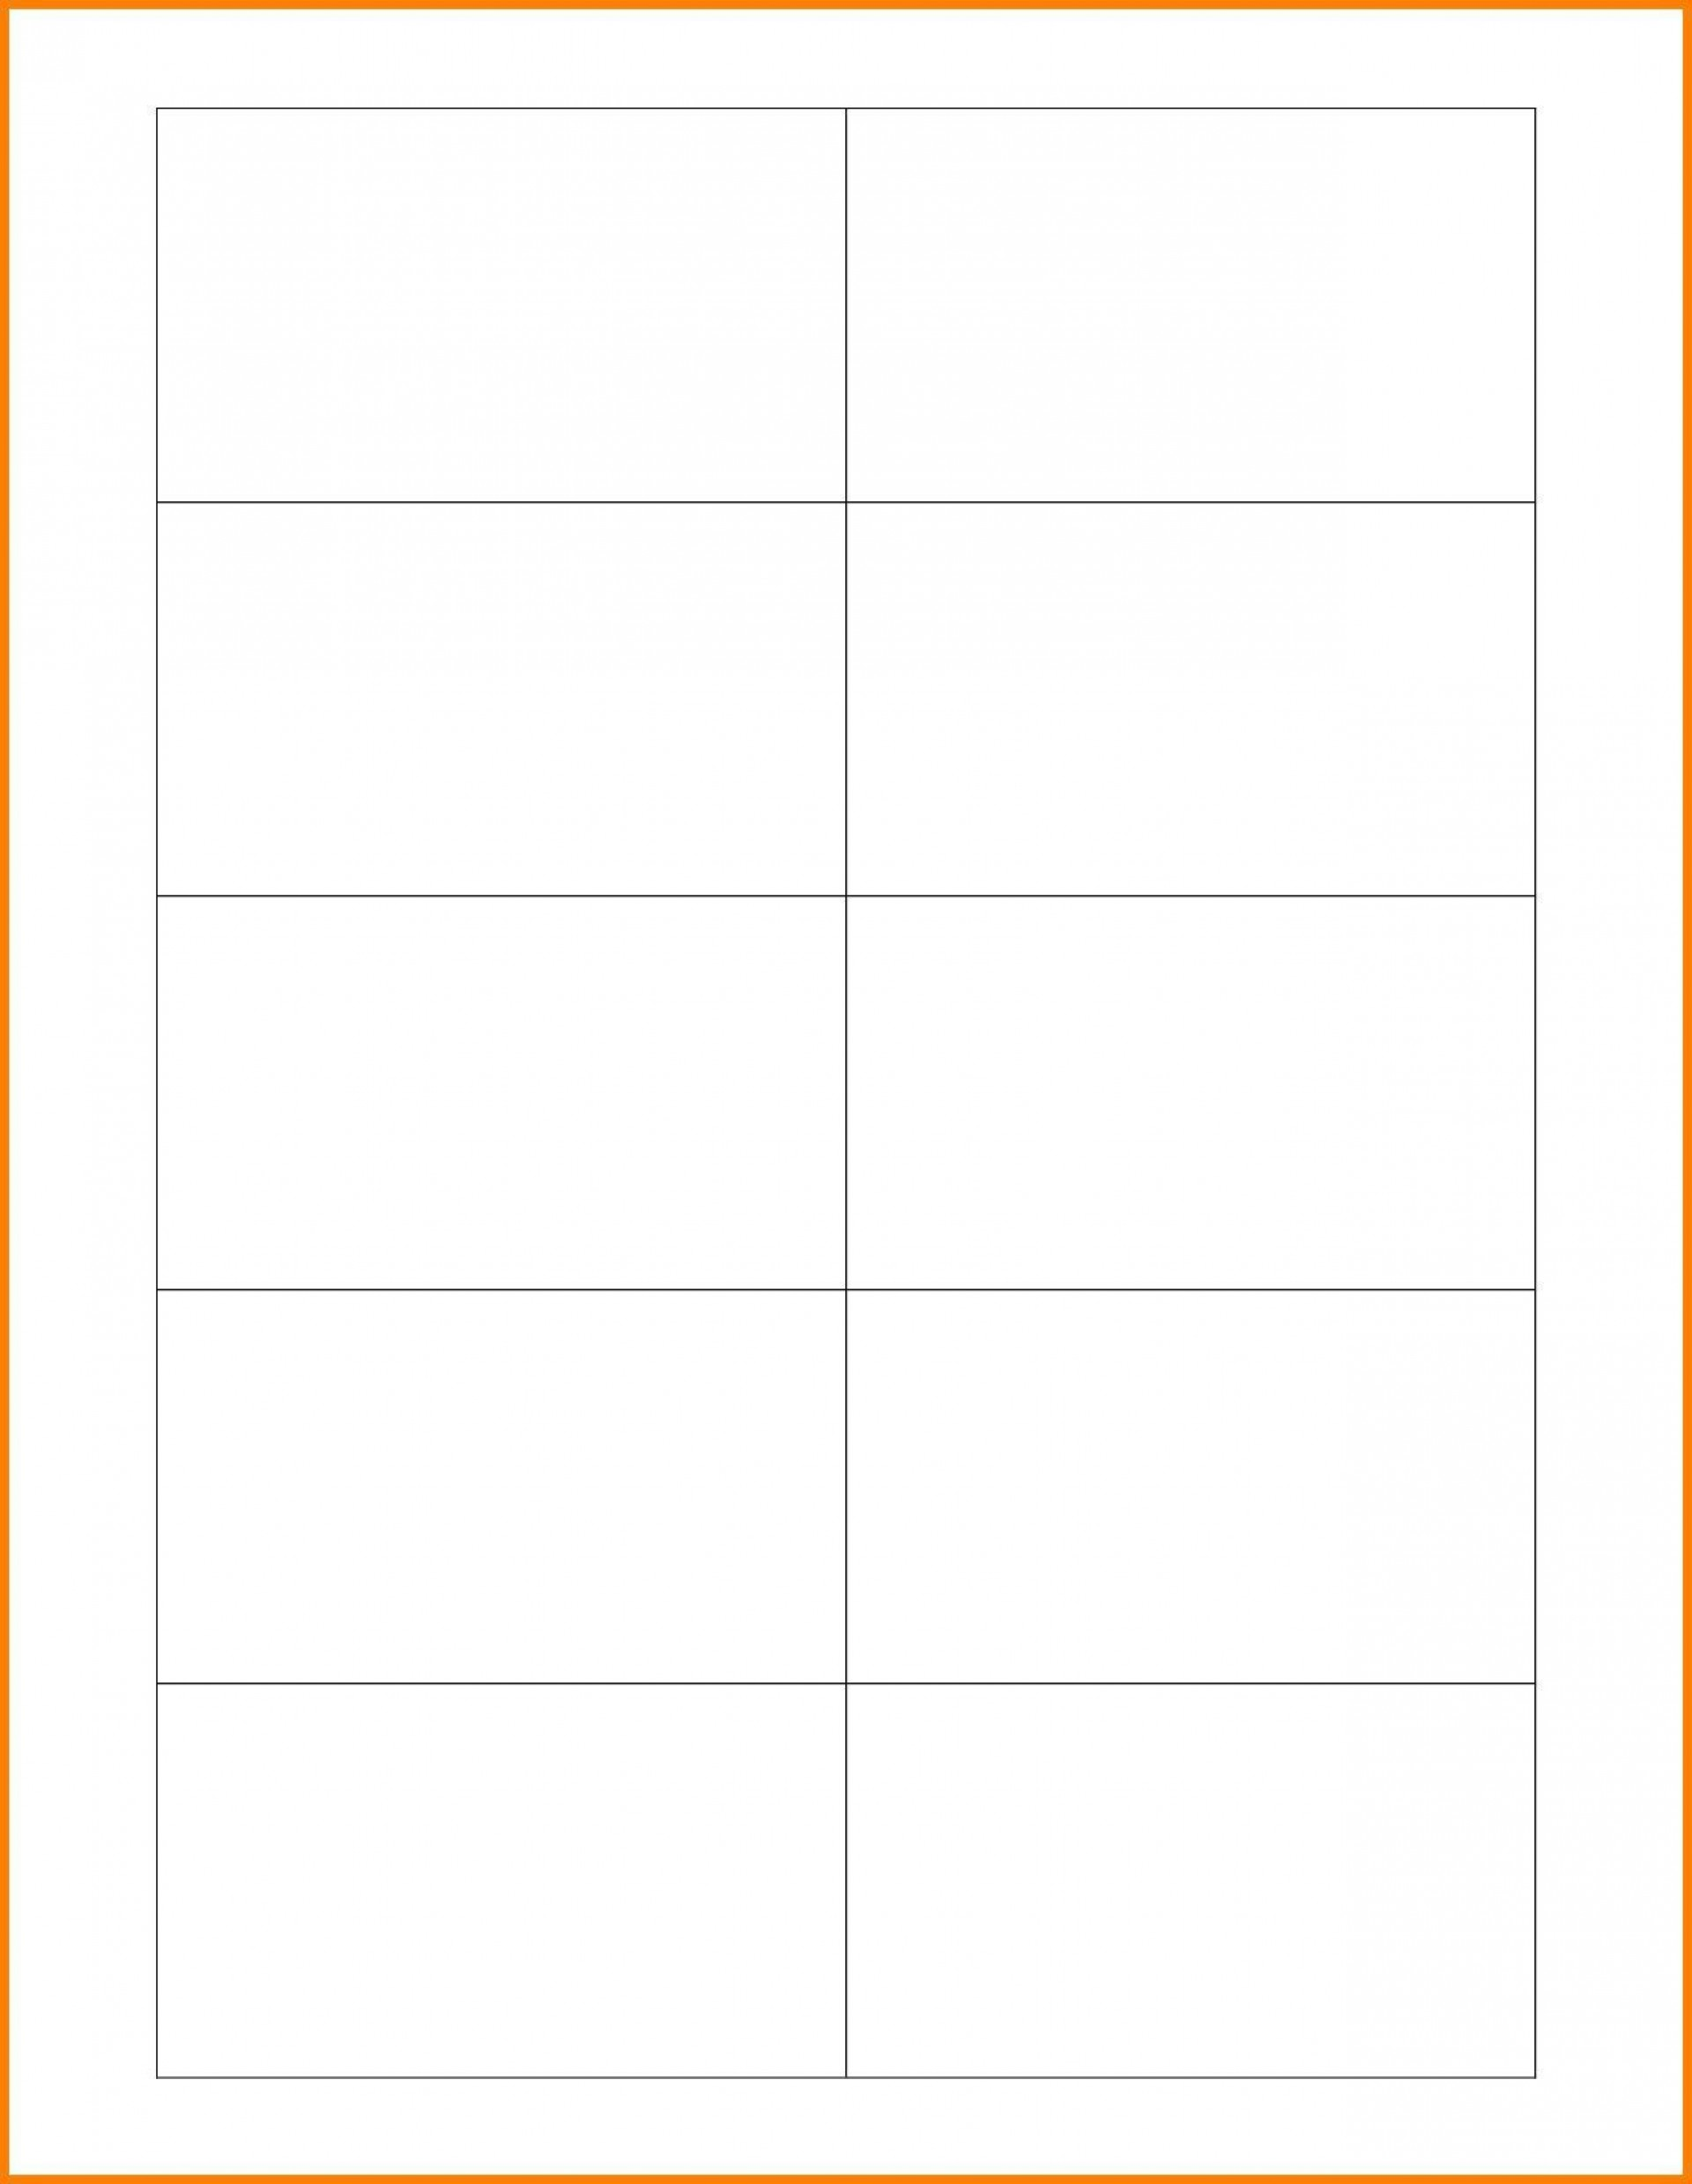 007 Astounding Free Printable Blank Busines Card Template For Word Example 1920